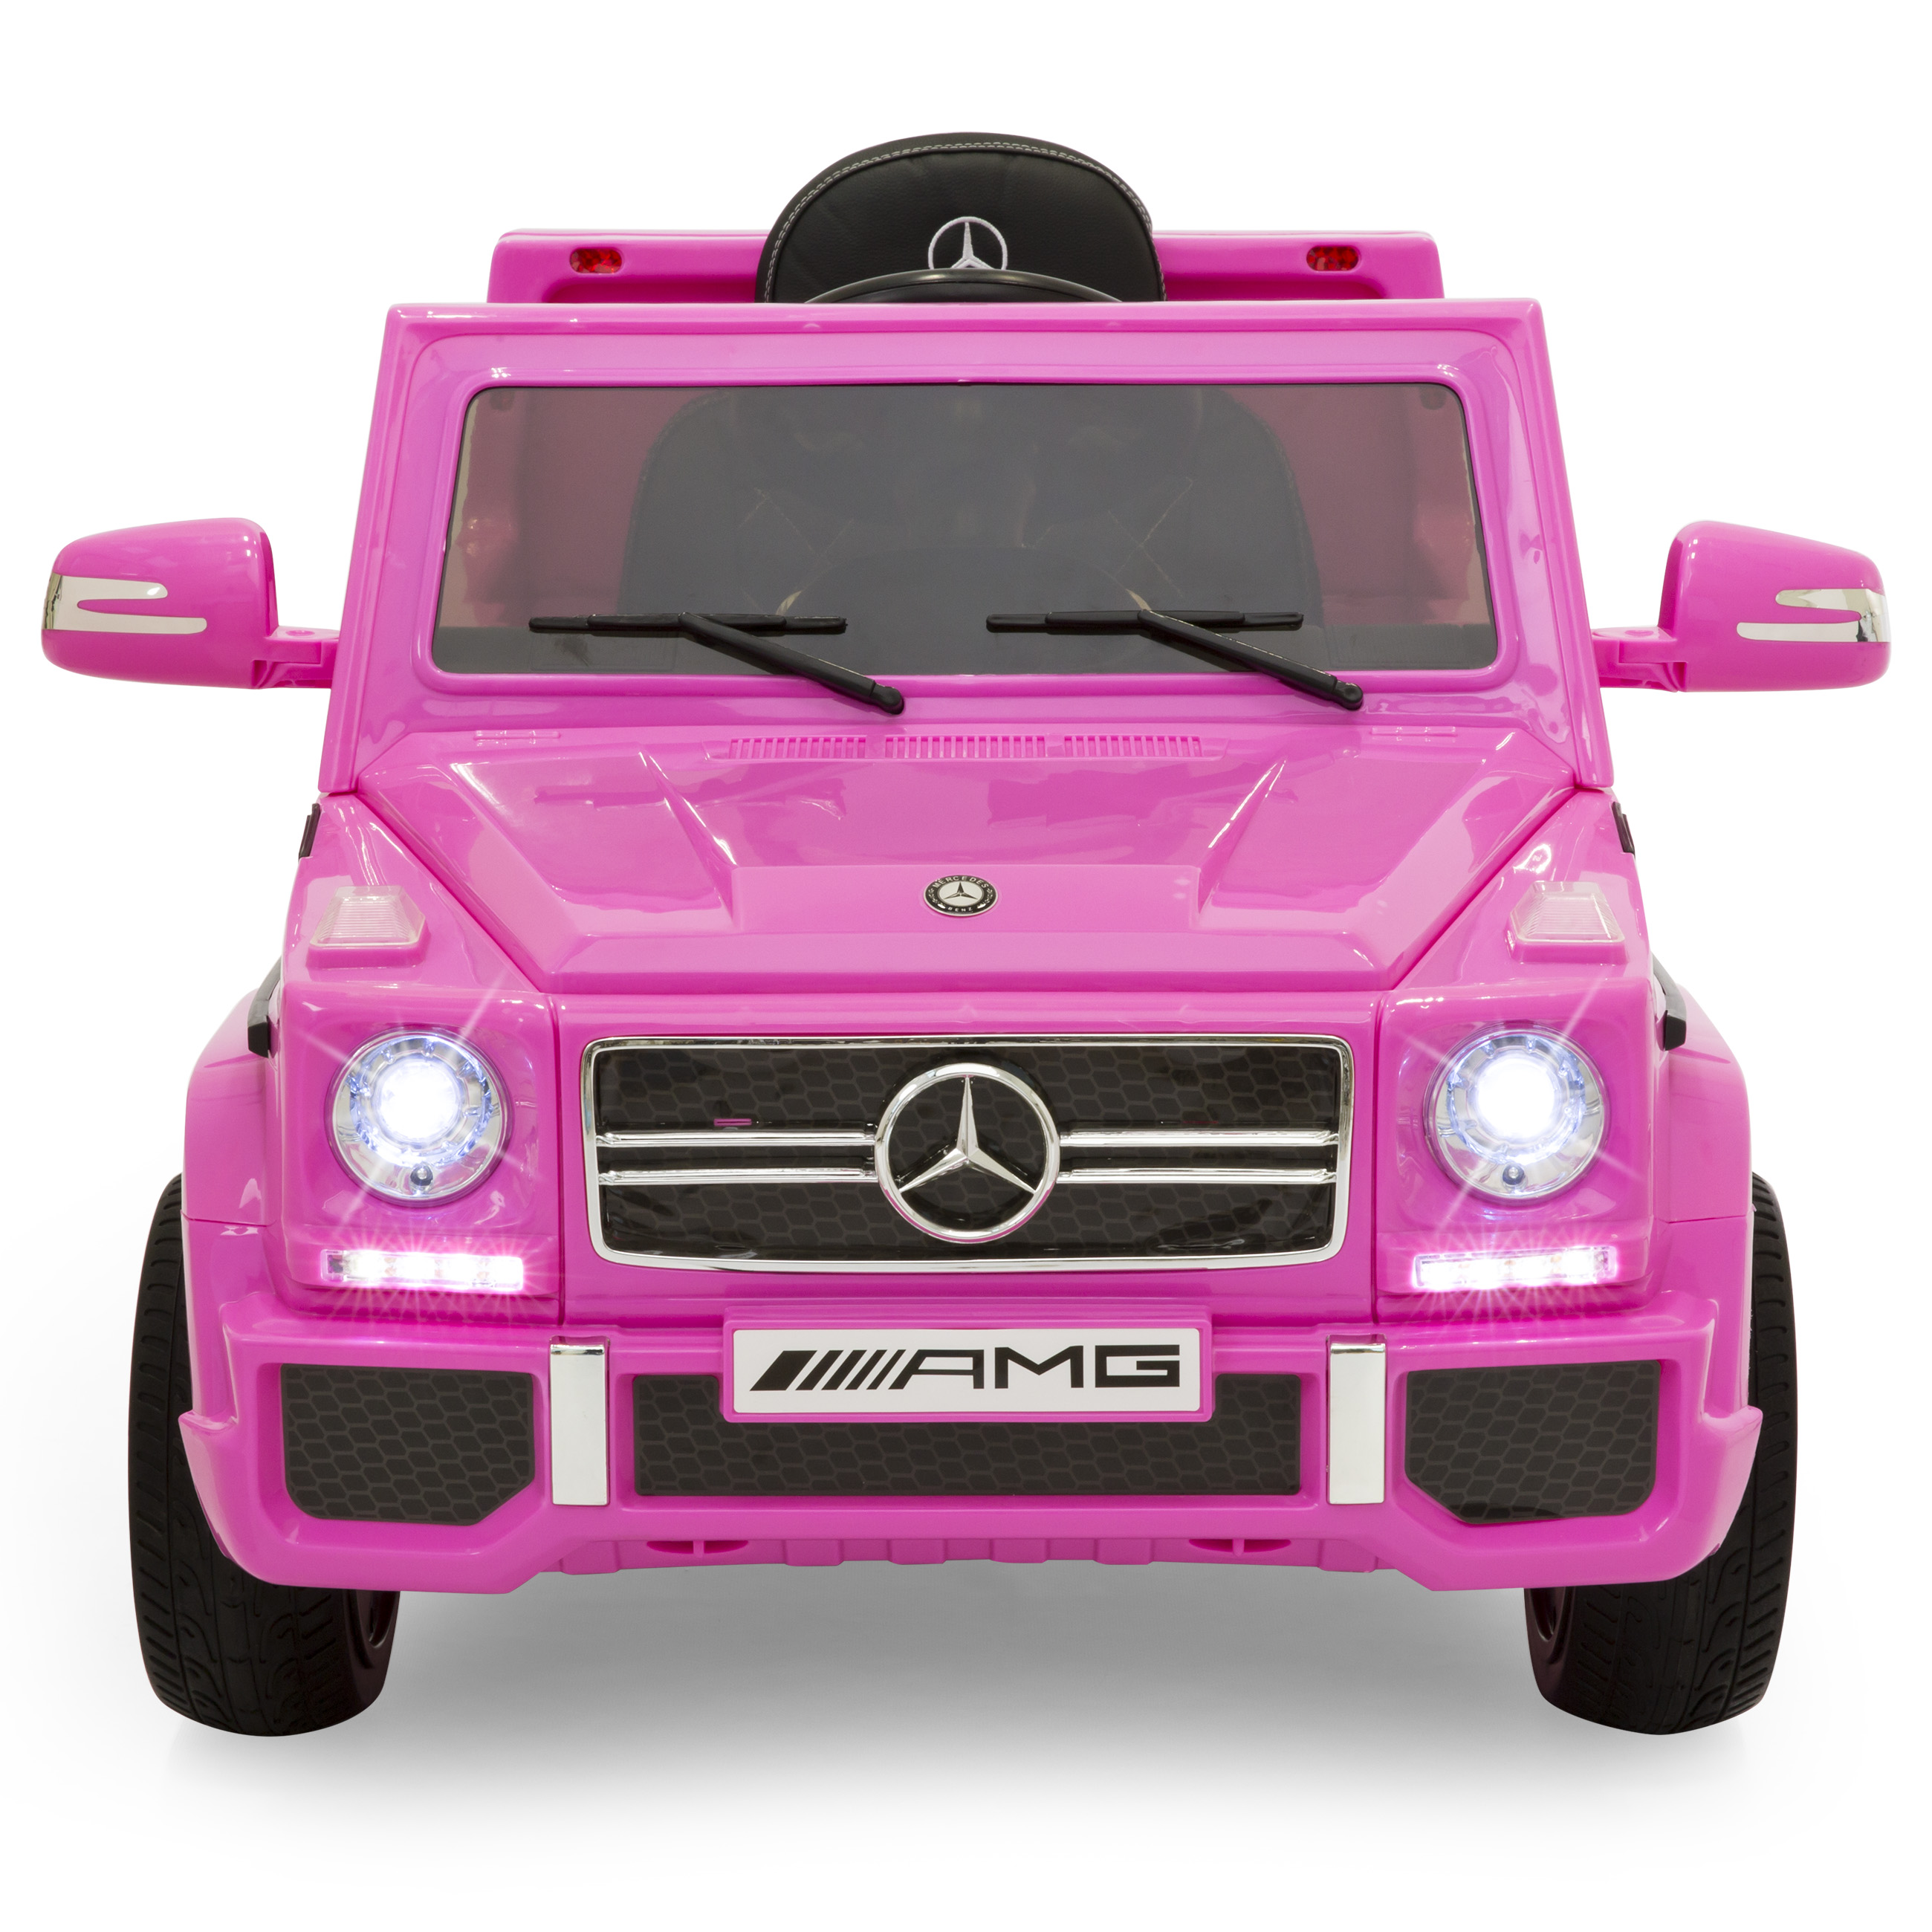 Best Choice Products 12V Licensed Mercedes-Benz G65 SUV Ride On Car w/ Parent Control Built In Speakers AUX Jack - Pink